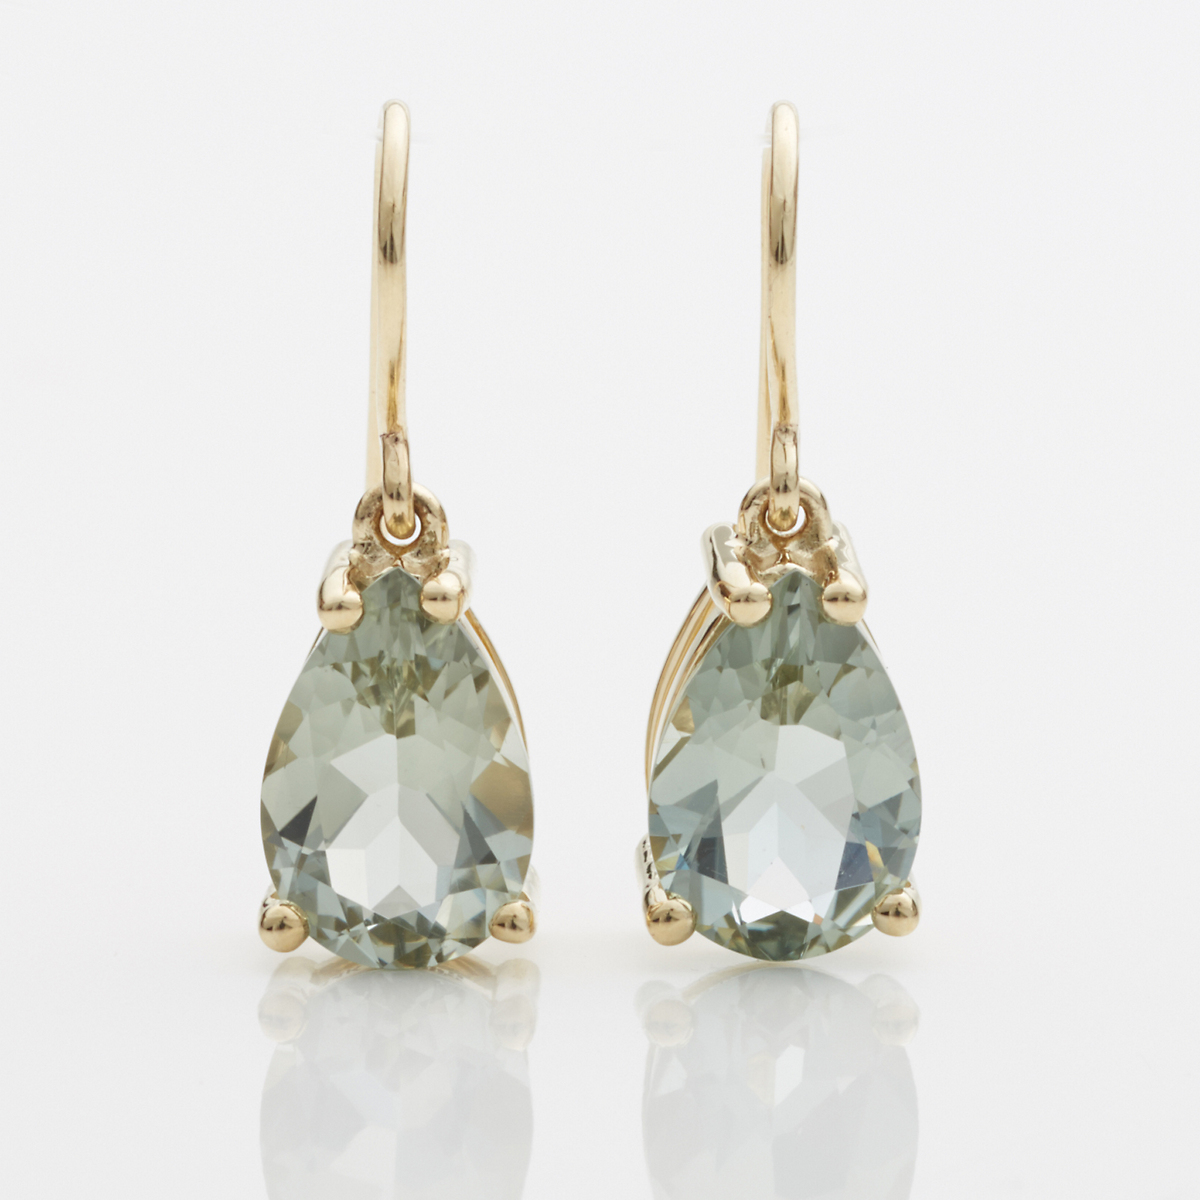 Gump's Green Quartz Teardrop Earrings